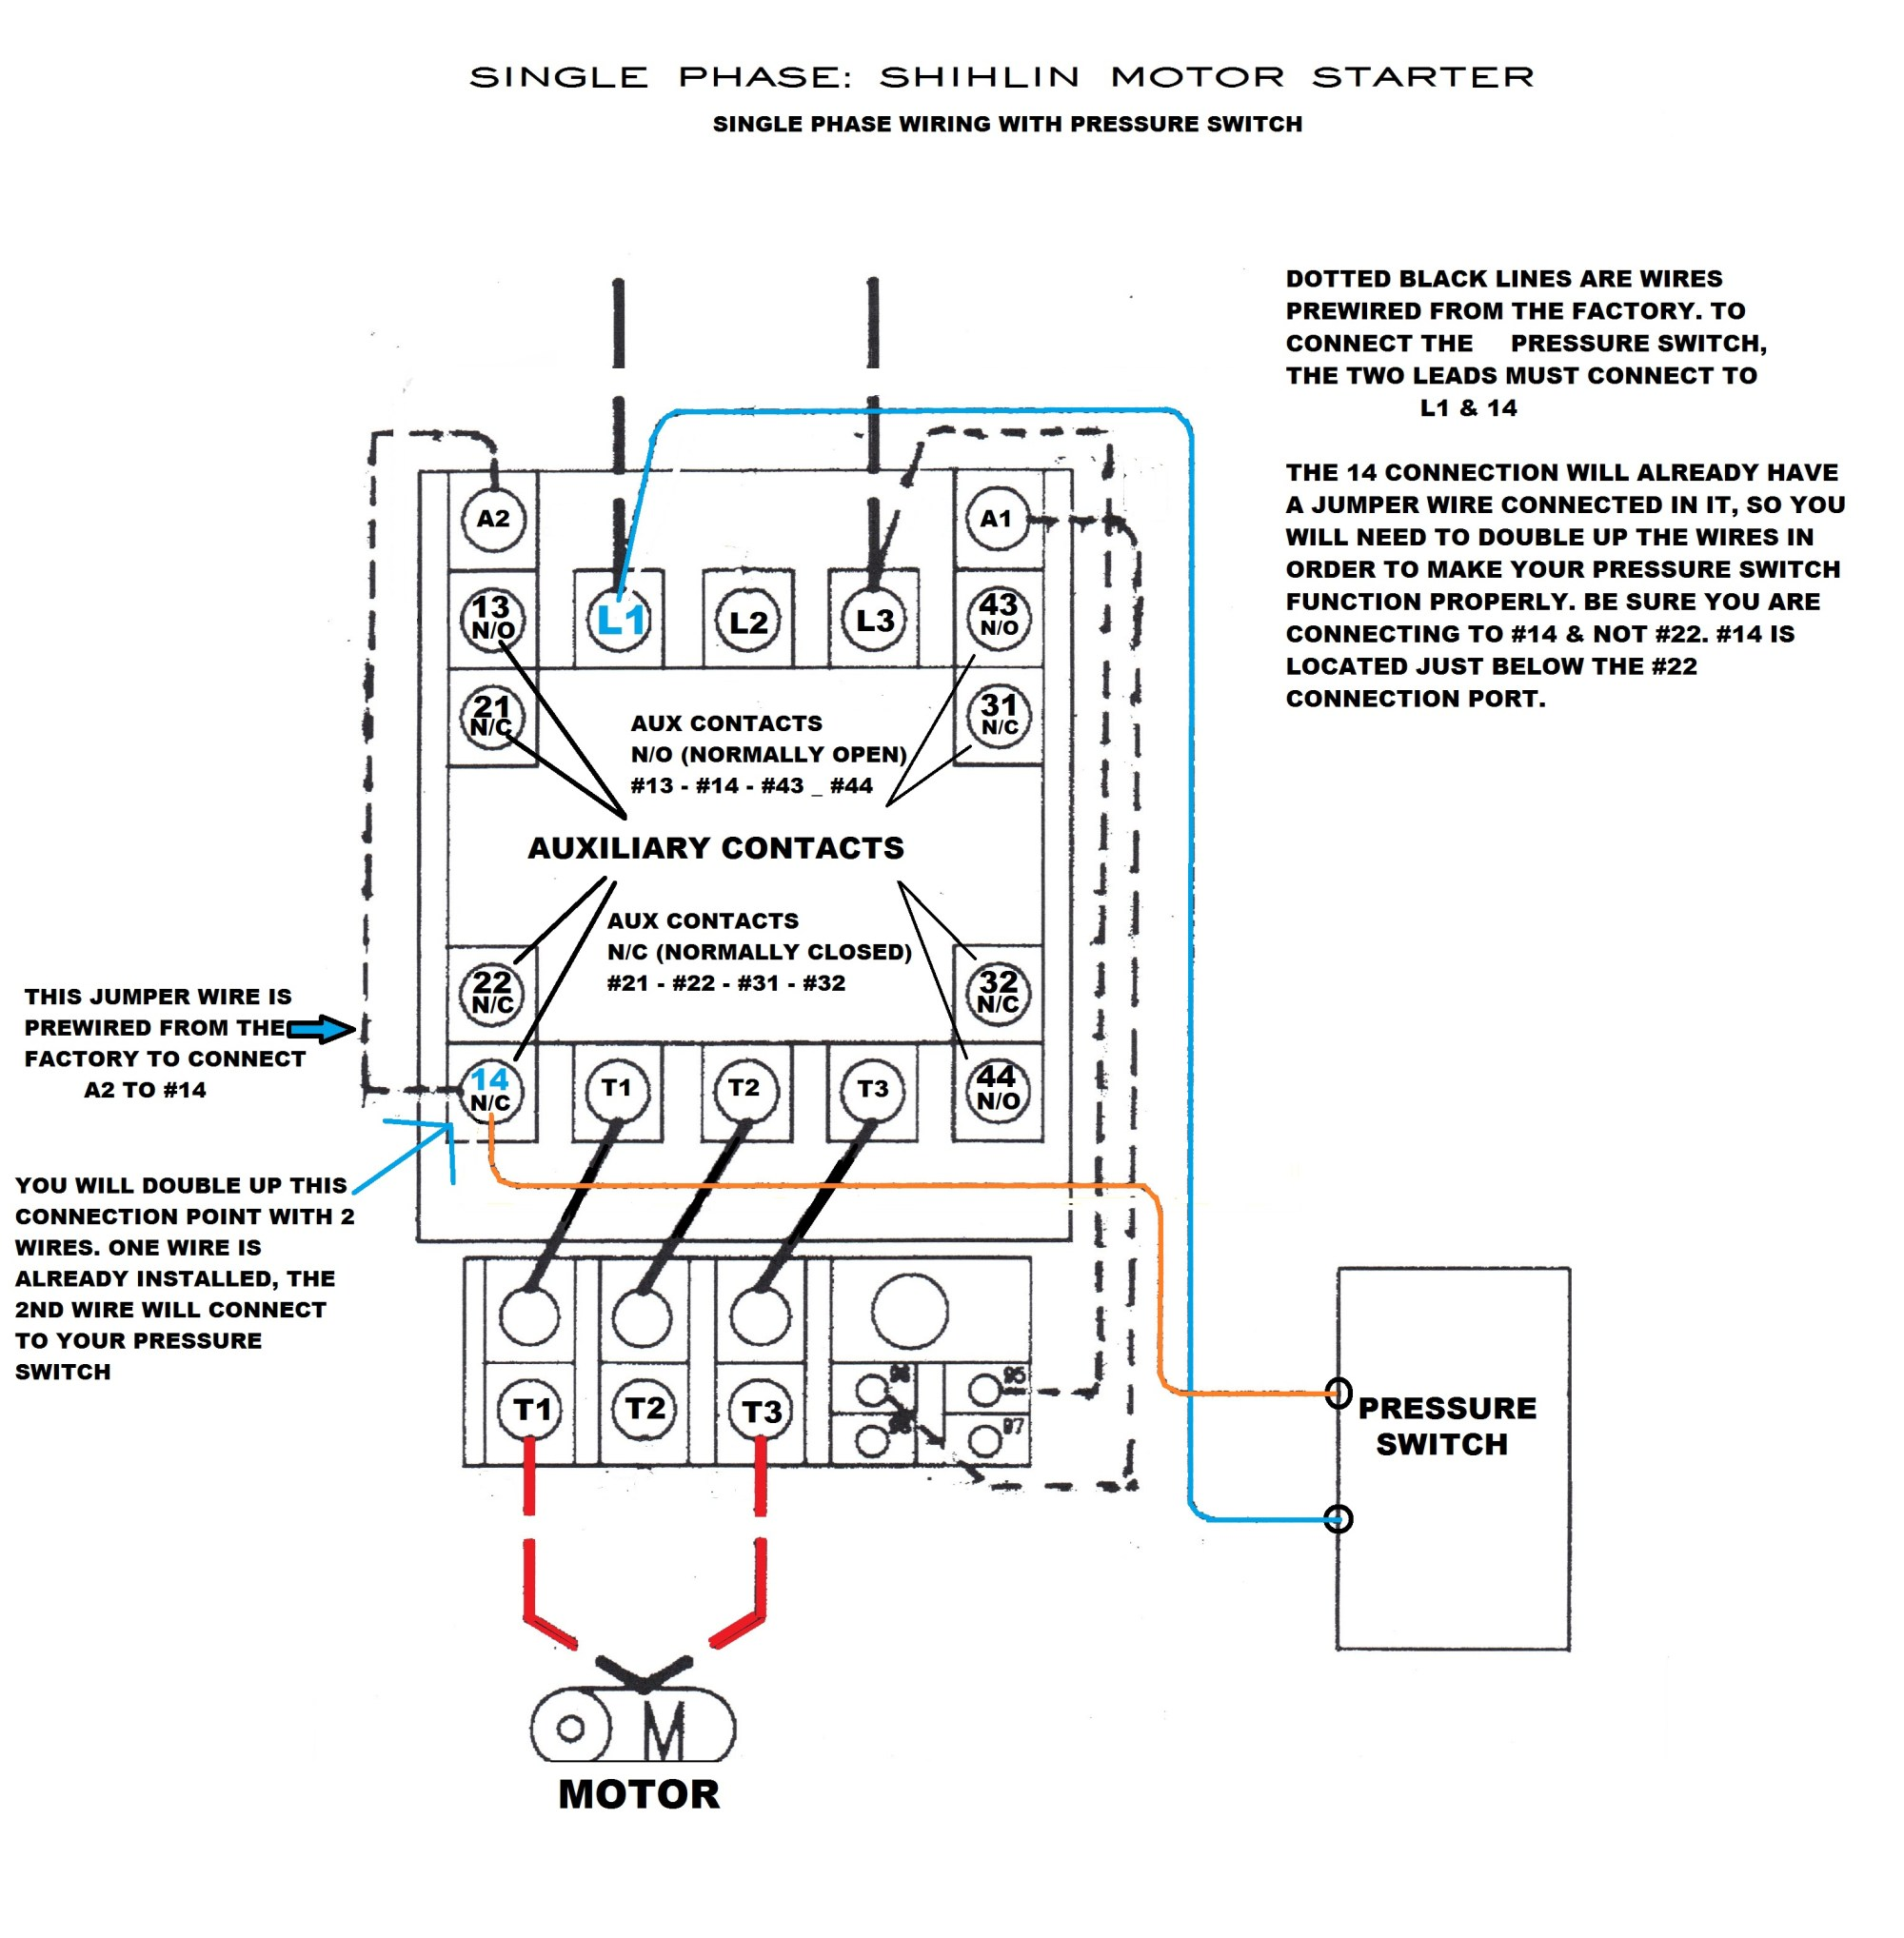 hight resolution of square d wiring schematic vyn zaislunamai uk u2022 rh vyn zaislunamai uk pressure tank switch wiring diagram 220 well pump wiring diagram